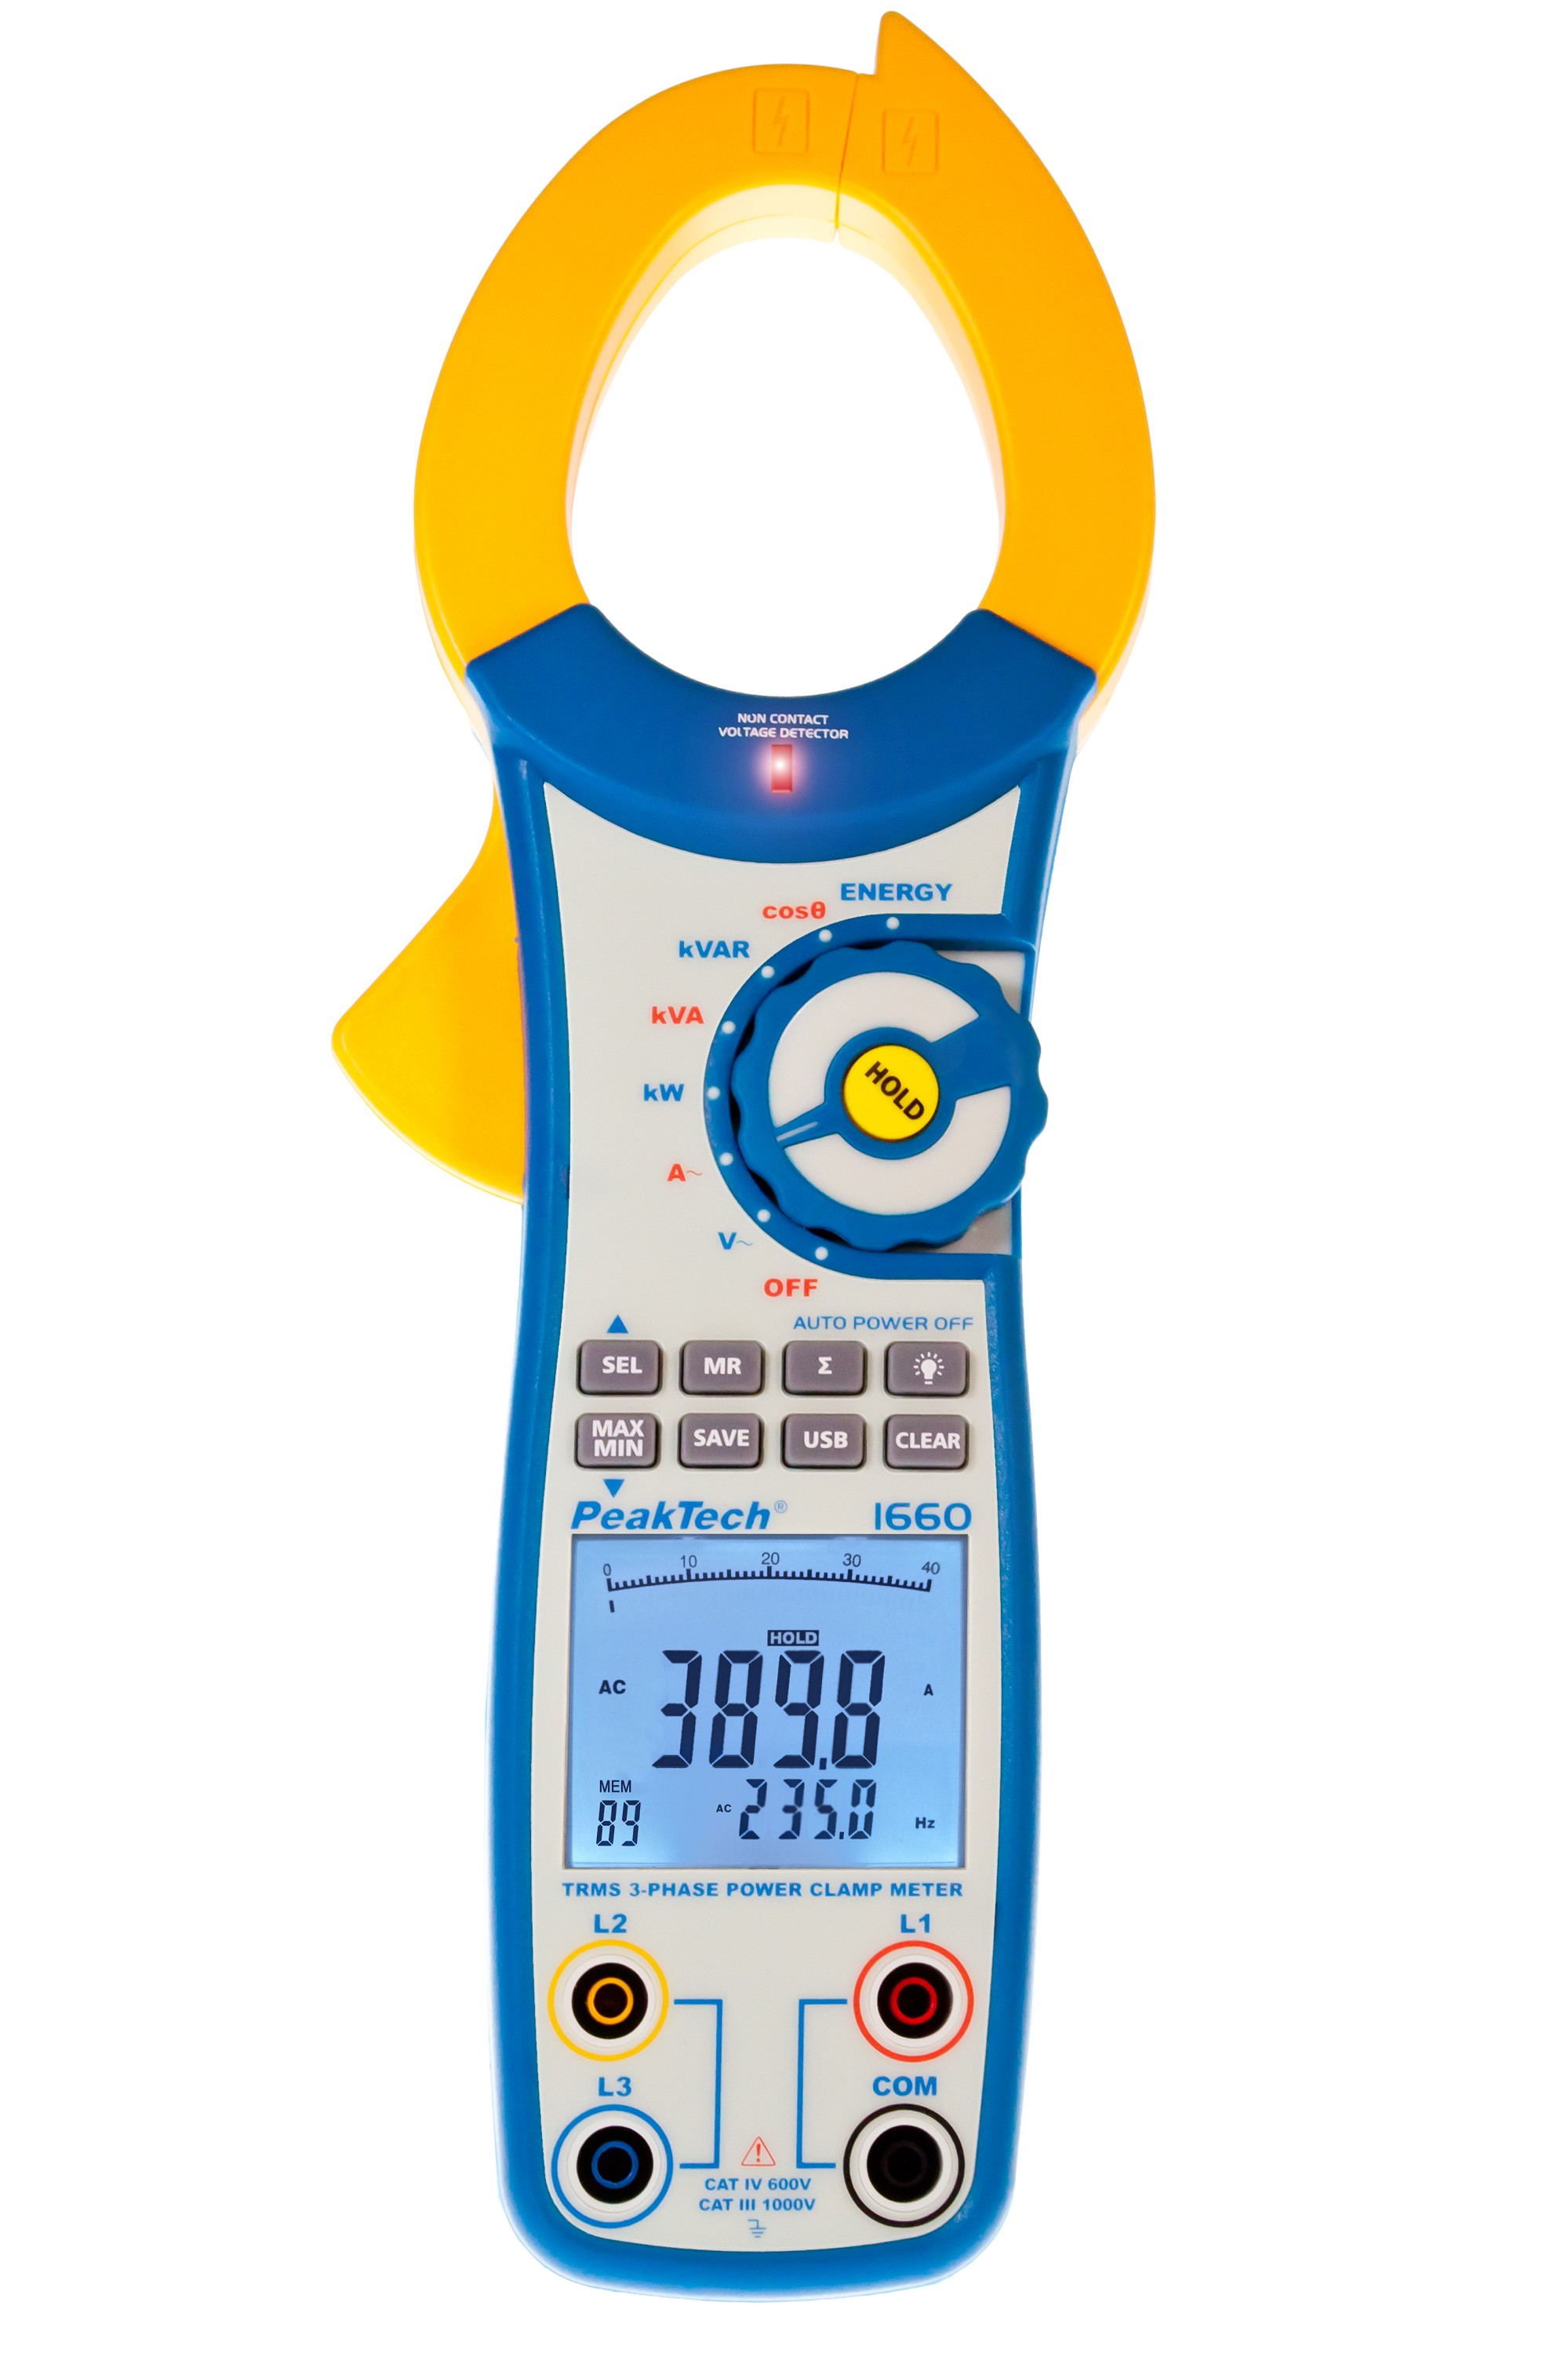 «PeakTech® P 1660» TrueRMS power clamp meter 1000 A AC up to 750 kW